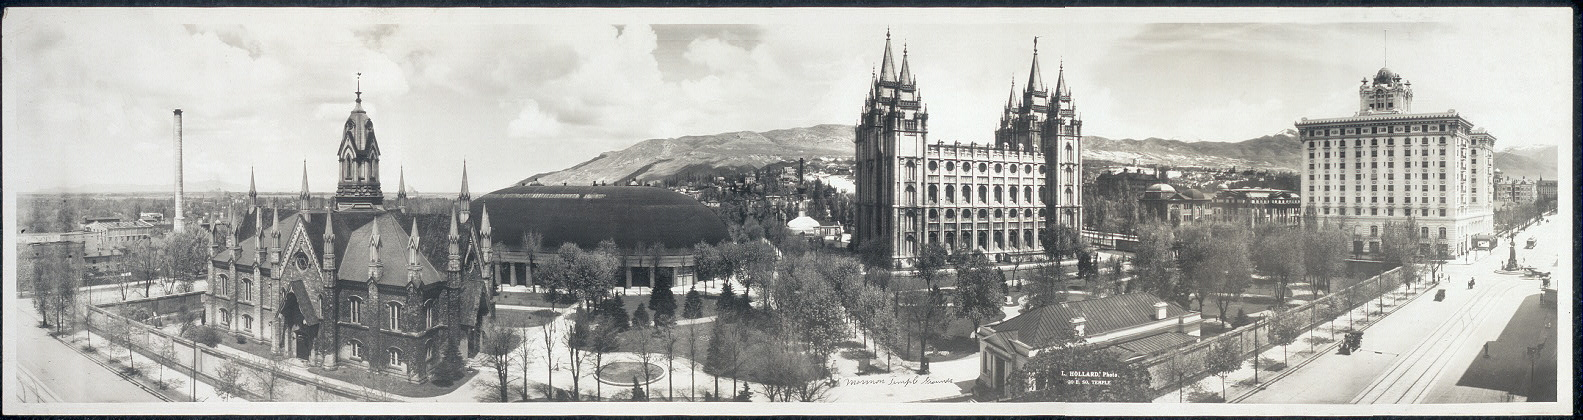 1912 Temple Square (Assembly Hall is located on the left).